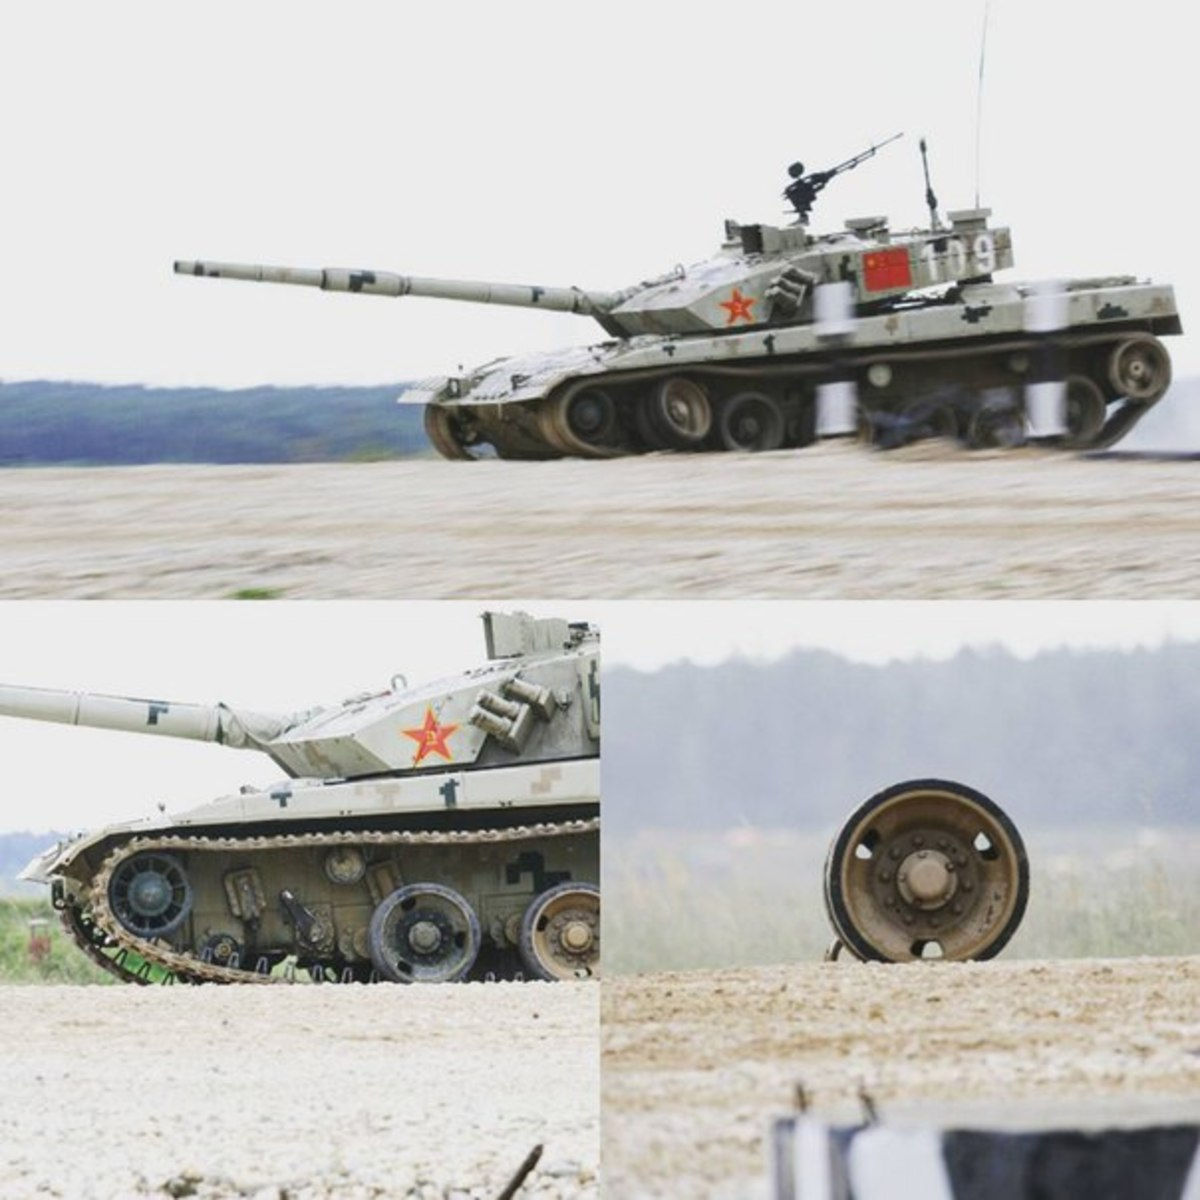 How a Chinese Type 96B Tank Lost a Wheel During an Event